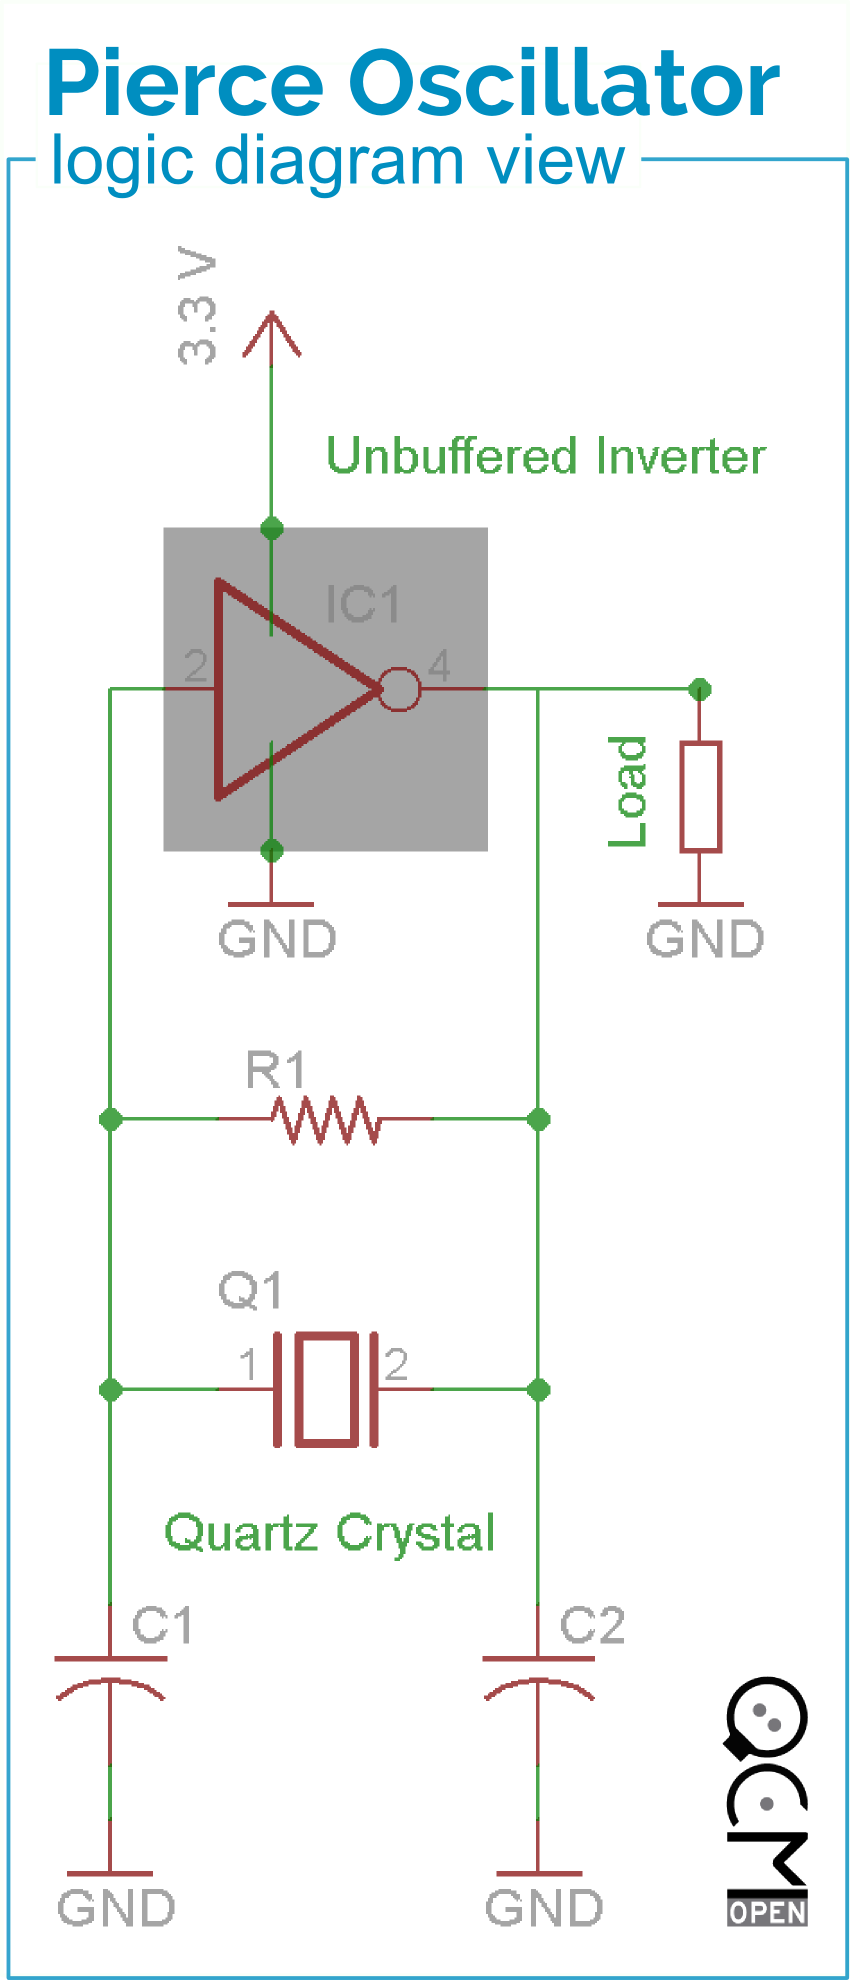 Need Advice With Lm317t Current Limiting Circuit New Alternative further Enhancing Openqcm Quartz Crystal Microbalance Frequency Stability And Power Consumption furthermore Watch as well 826840 Wiring Nova Mmb Speedo also Lm317 2n3055 Variable Circuit Problems. on voltage regulator circuit diagram